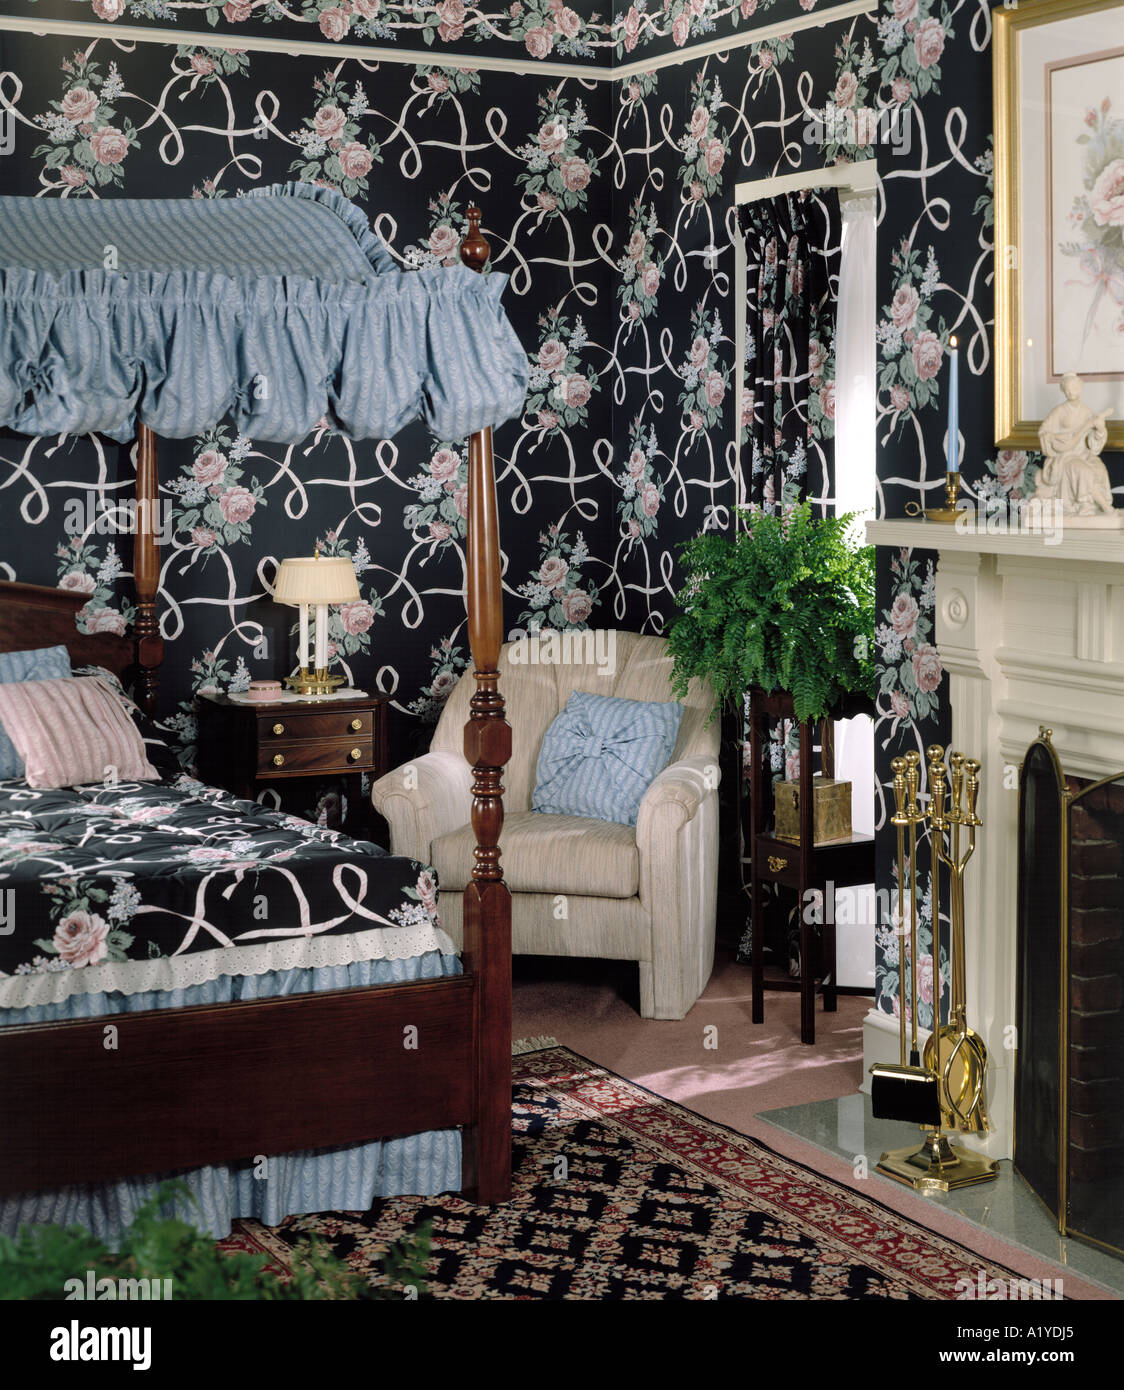 4 four poster canopy bed bedroom pillows fireplace oriental carpet